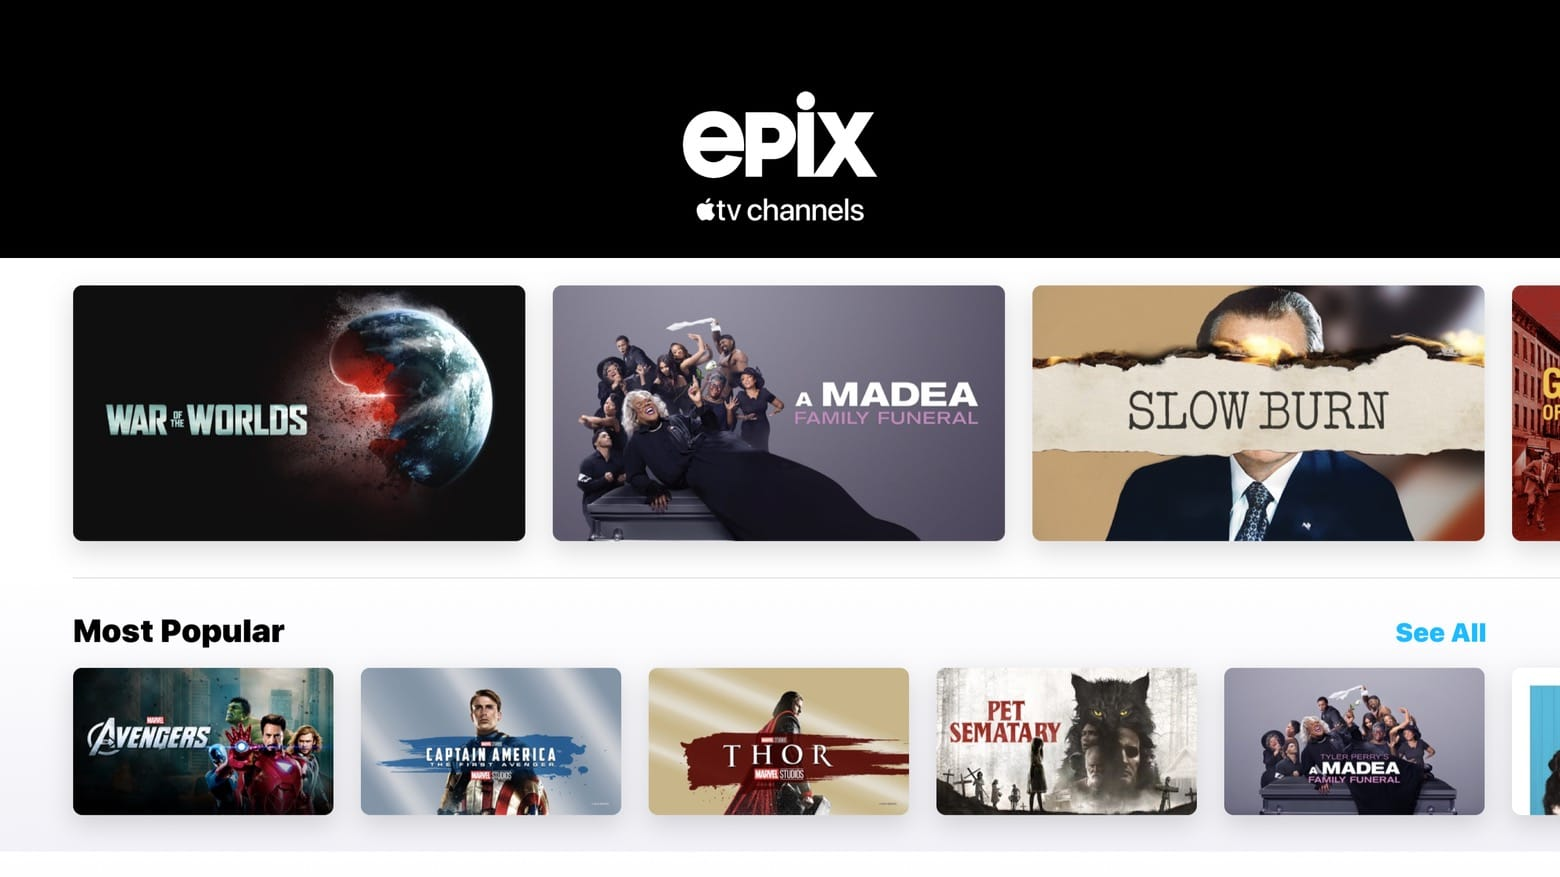 Watch Epix movies and shows for free through Apple TV app